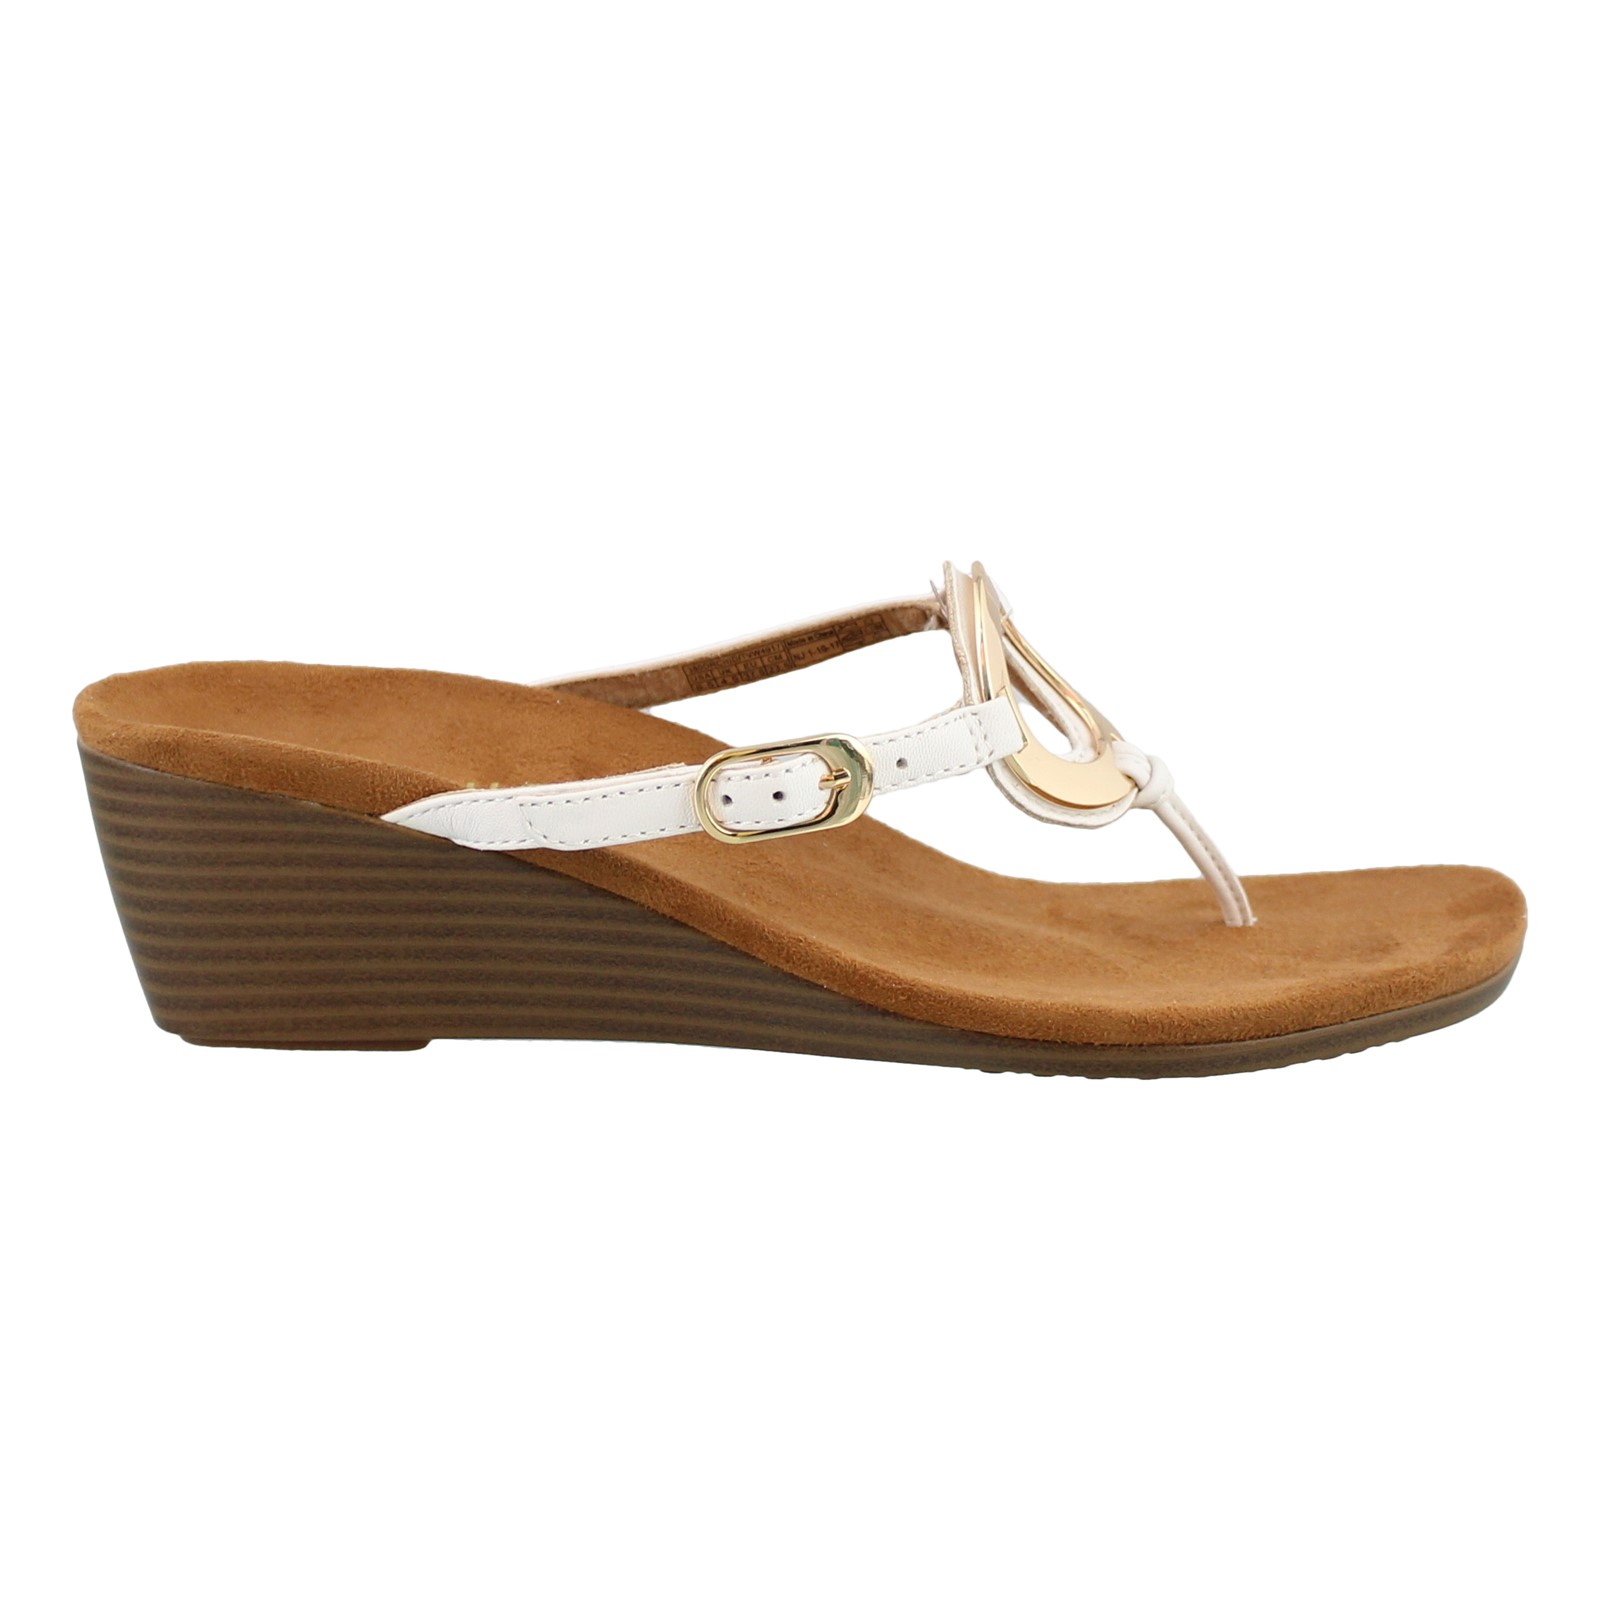 Women's Vionic, Park Orchid Mid Heel Wedge Sandals